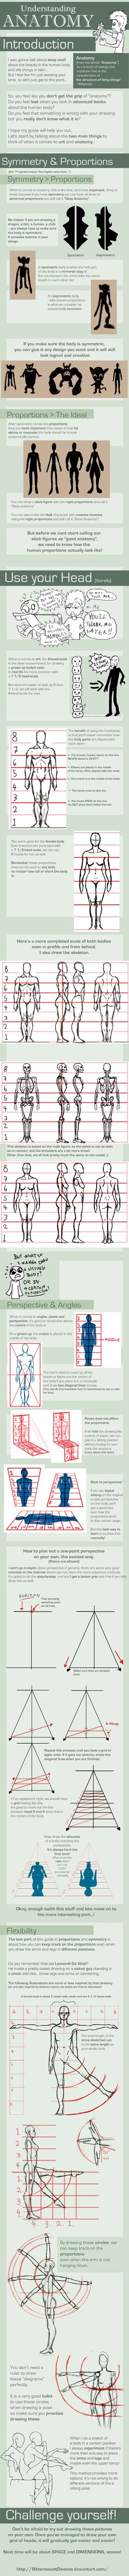 UNDERSTANDING ANATOMY: part I by =FOERVRAENGD | #drawing #tutorial #training #creative #paper #pen #design #character #illustration #basics < found on www.deviantART.com pinned by an #advertising agency from #Hamburg / #Germany - www.BlickeDeeler.de | Follow us on www.facebook.com/Blickedeeler